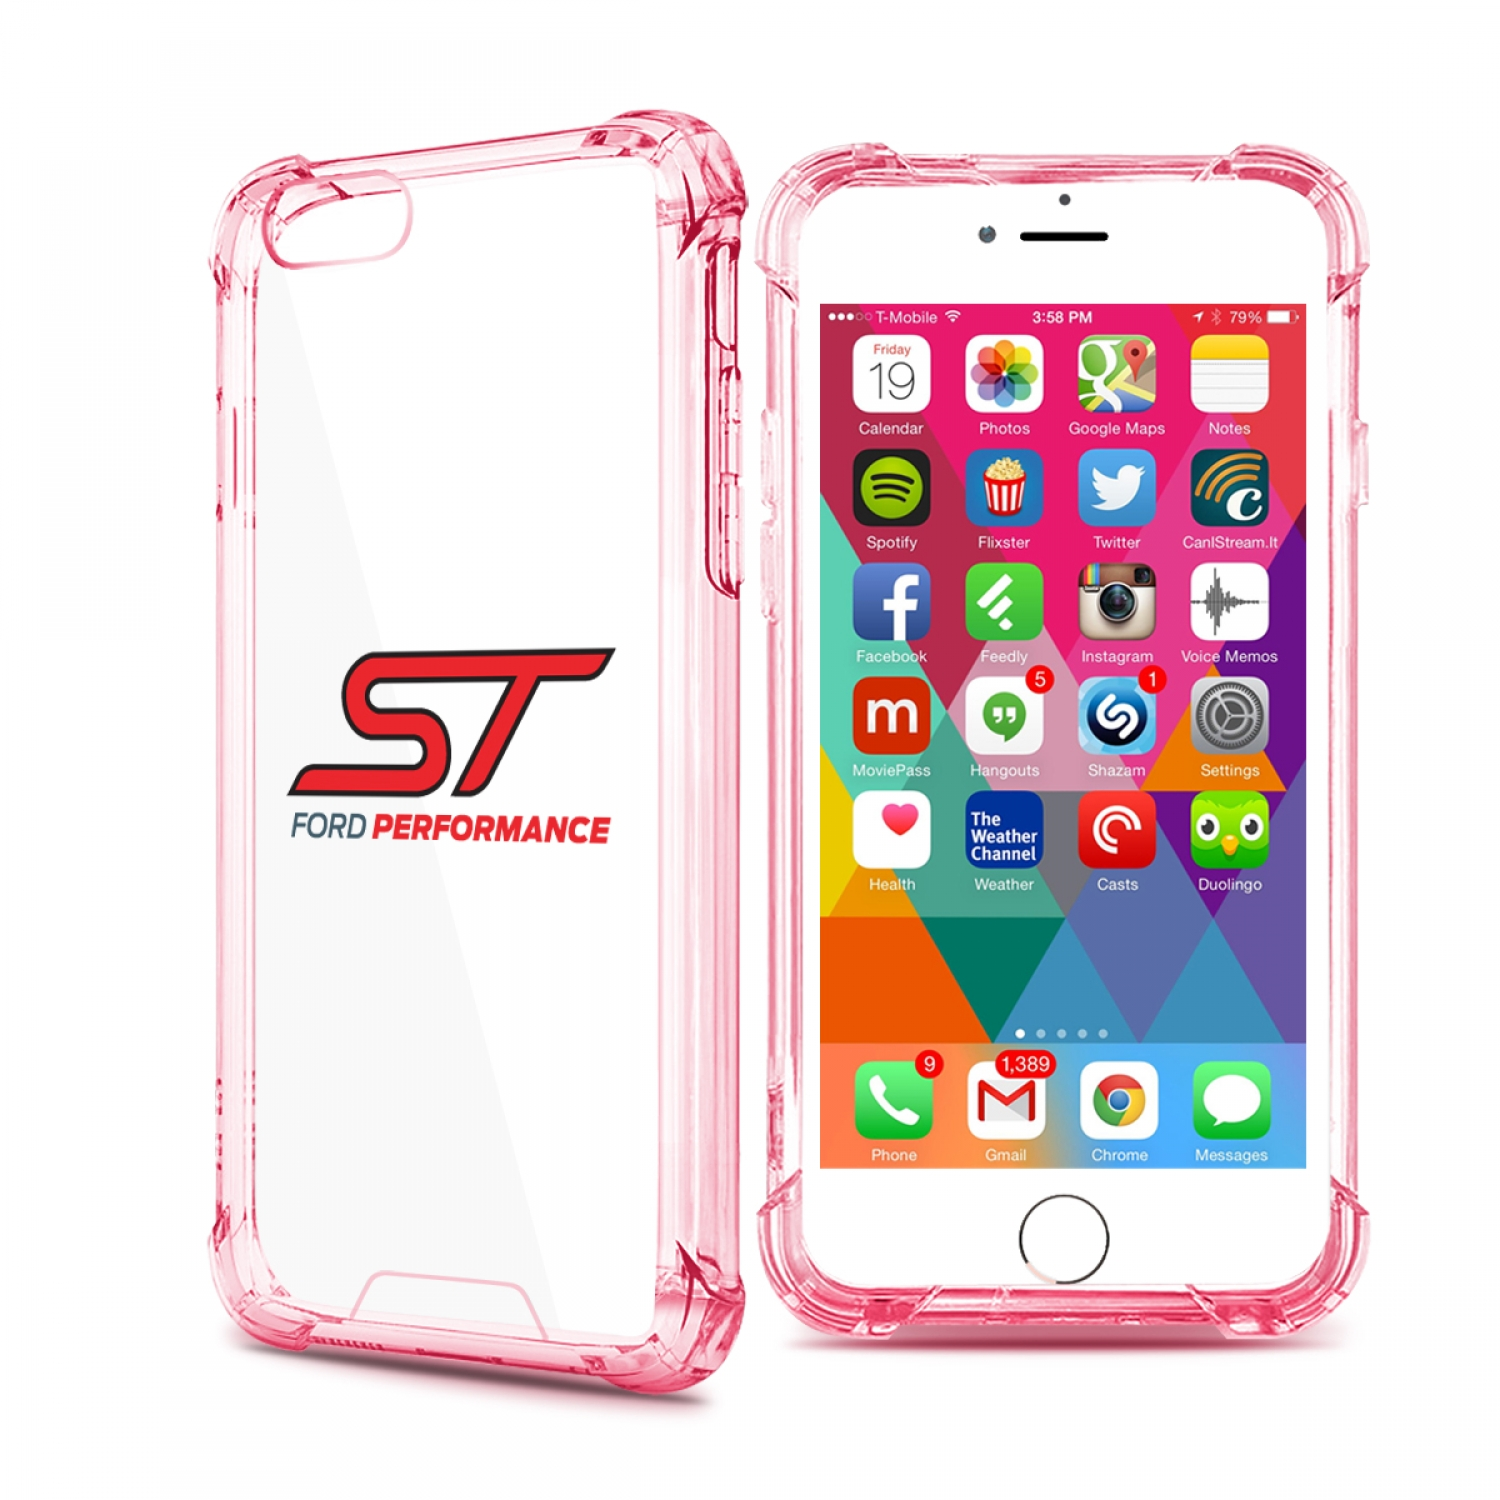 Ford Focus ST iPhone 7 Rose-Red Clear TPU Shockproof Cell Phone Case